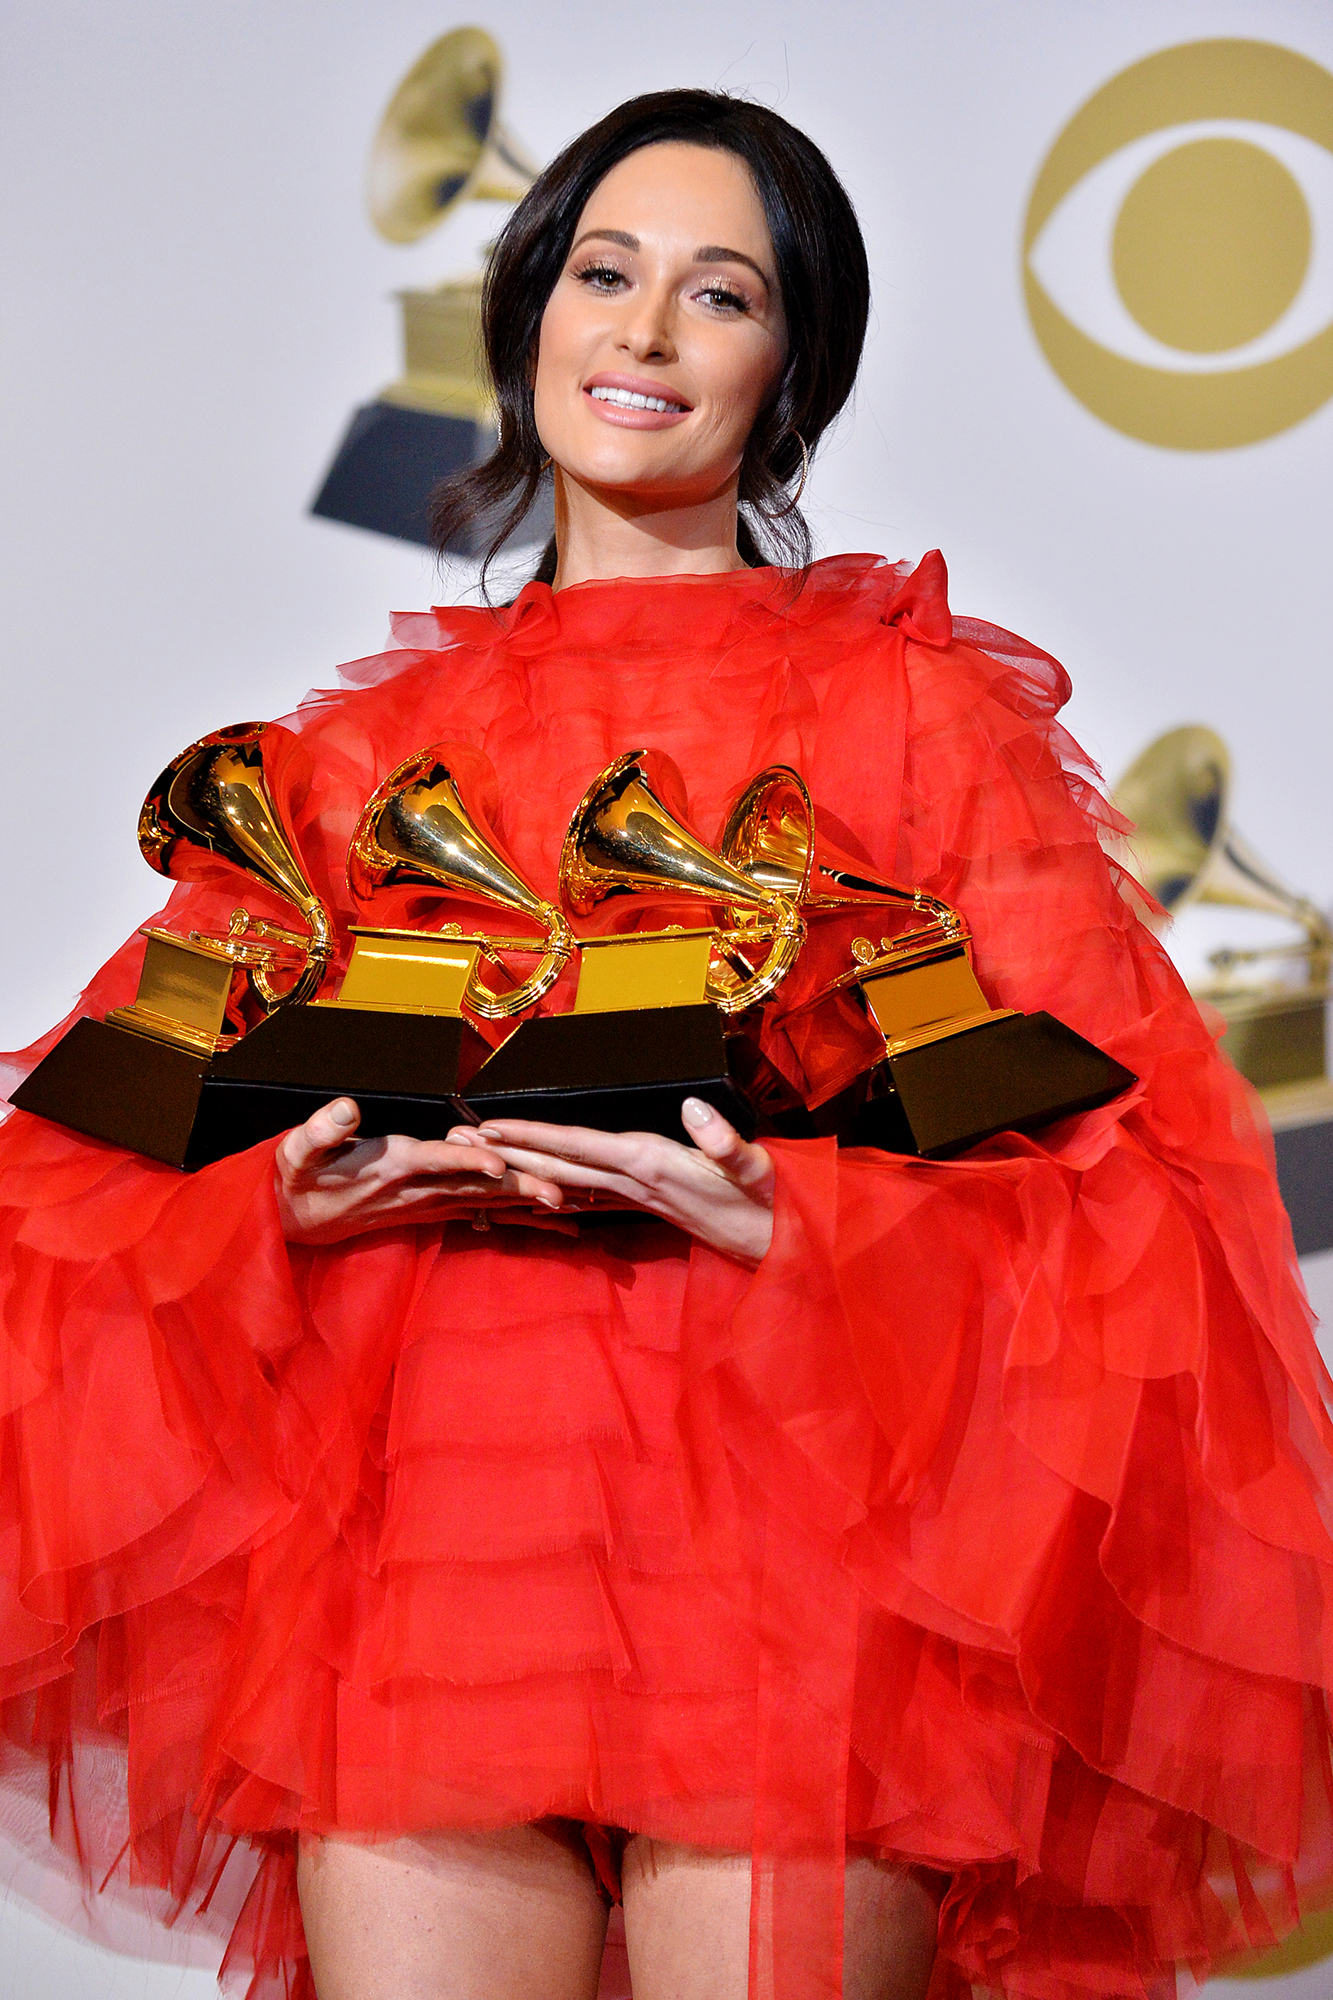 Grammys 2019 Fun Fact: Kacey Musgraves Won the Same 4 Awards That Taylor Swift Got in 2010 - Kacey Musgraves attends the 61st Annual GRAMMY Awards at Staples Center on February 10, 2019 in Los Angeles, California.